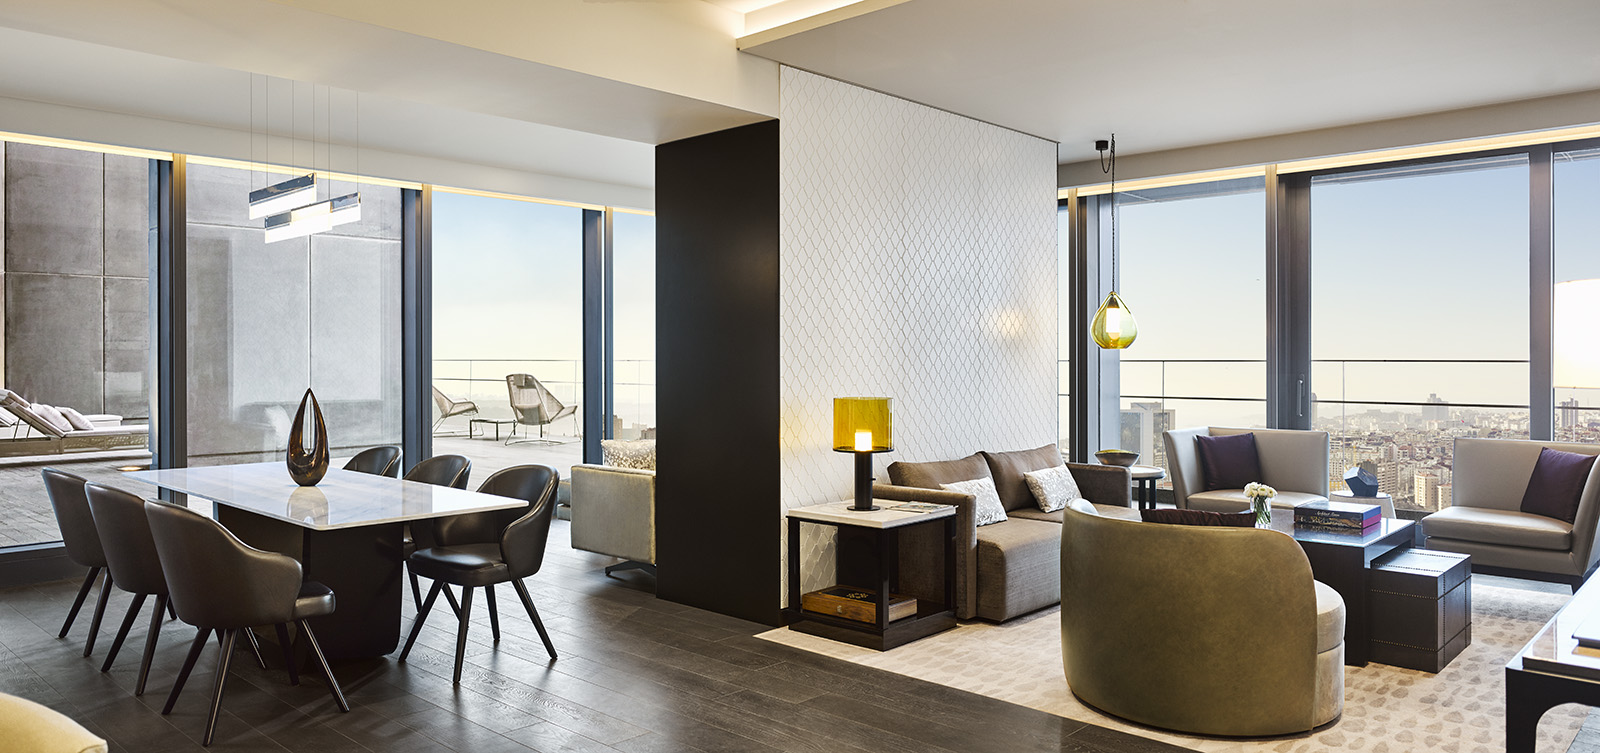 Serviced apartments also contain an owner's club lounge, which is set in one of the hotel's sky gardens. This exclusive retreat has both water and fire features, which create a balanced, Zen retreat for the owners.